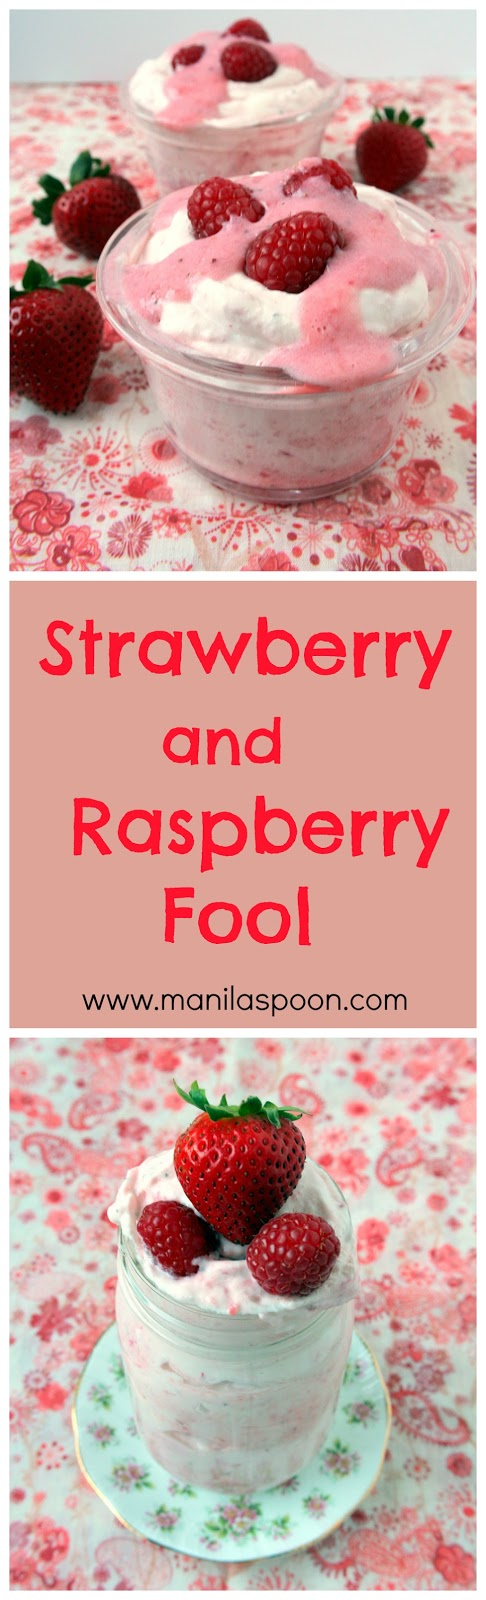 A yummy, quick and super-easy way to enjoy summer berries! Puree the berry or fruit of choice, fold into the sweetened whipped cream and voila - a fruity-licious and creamy Strawberry and Raspberry Fool that everyone will love! #strawberryfool #raspberryfool #englishdessert #summer